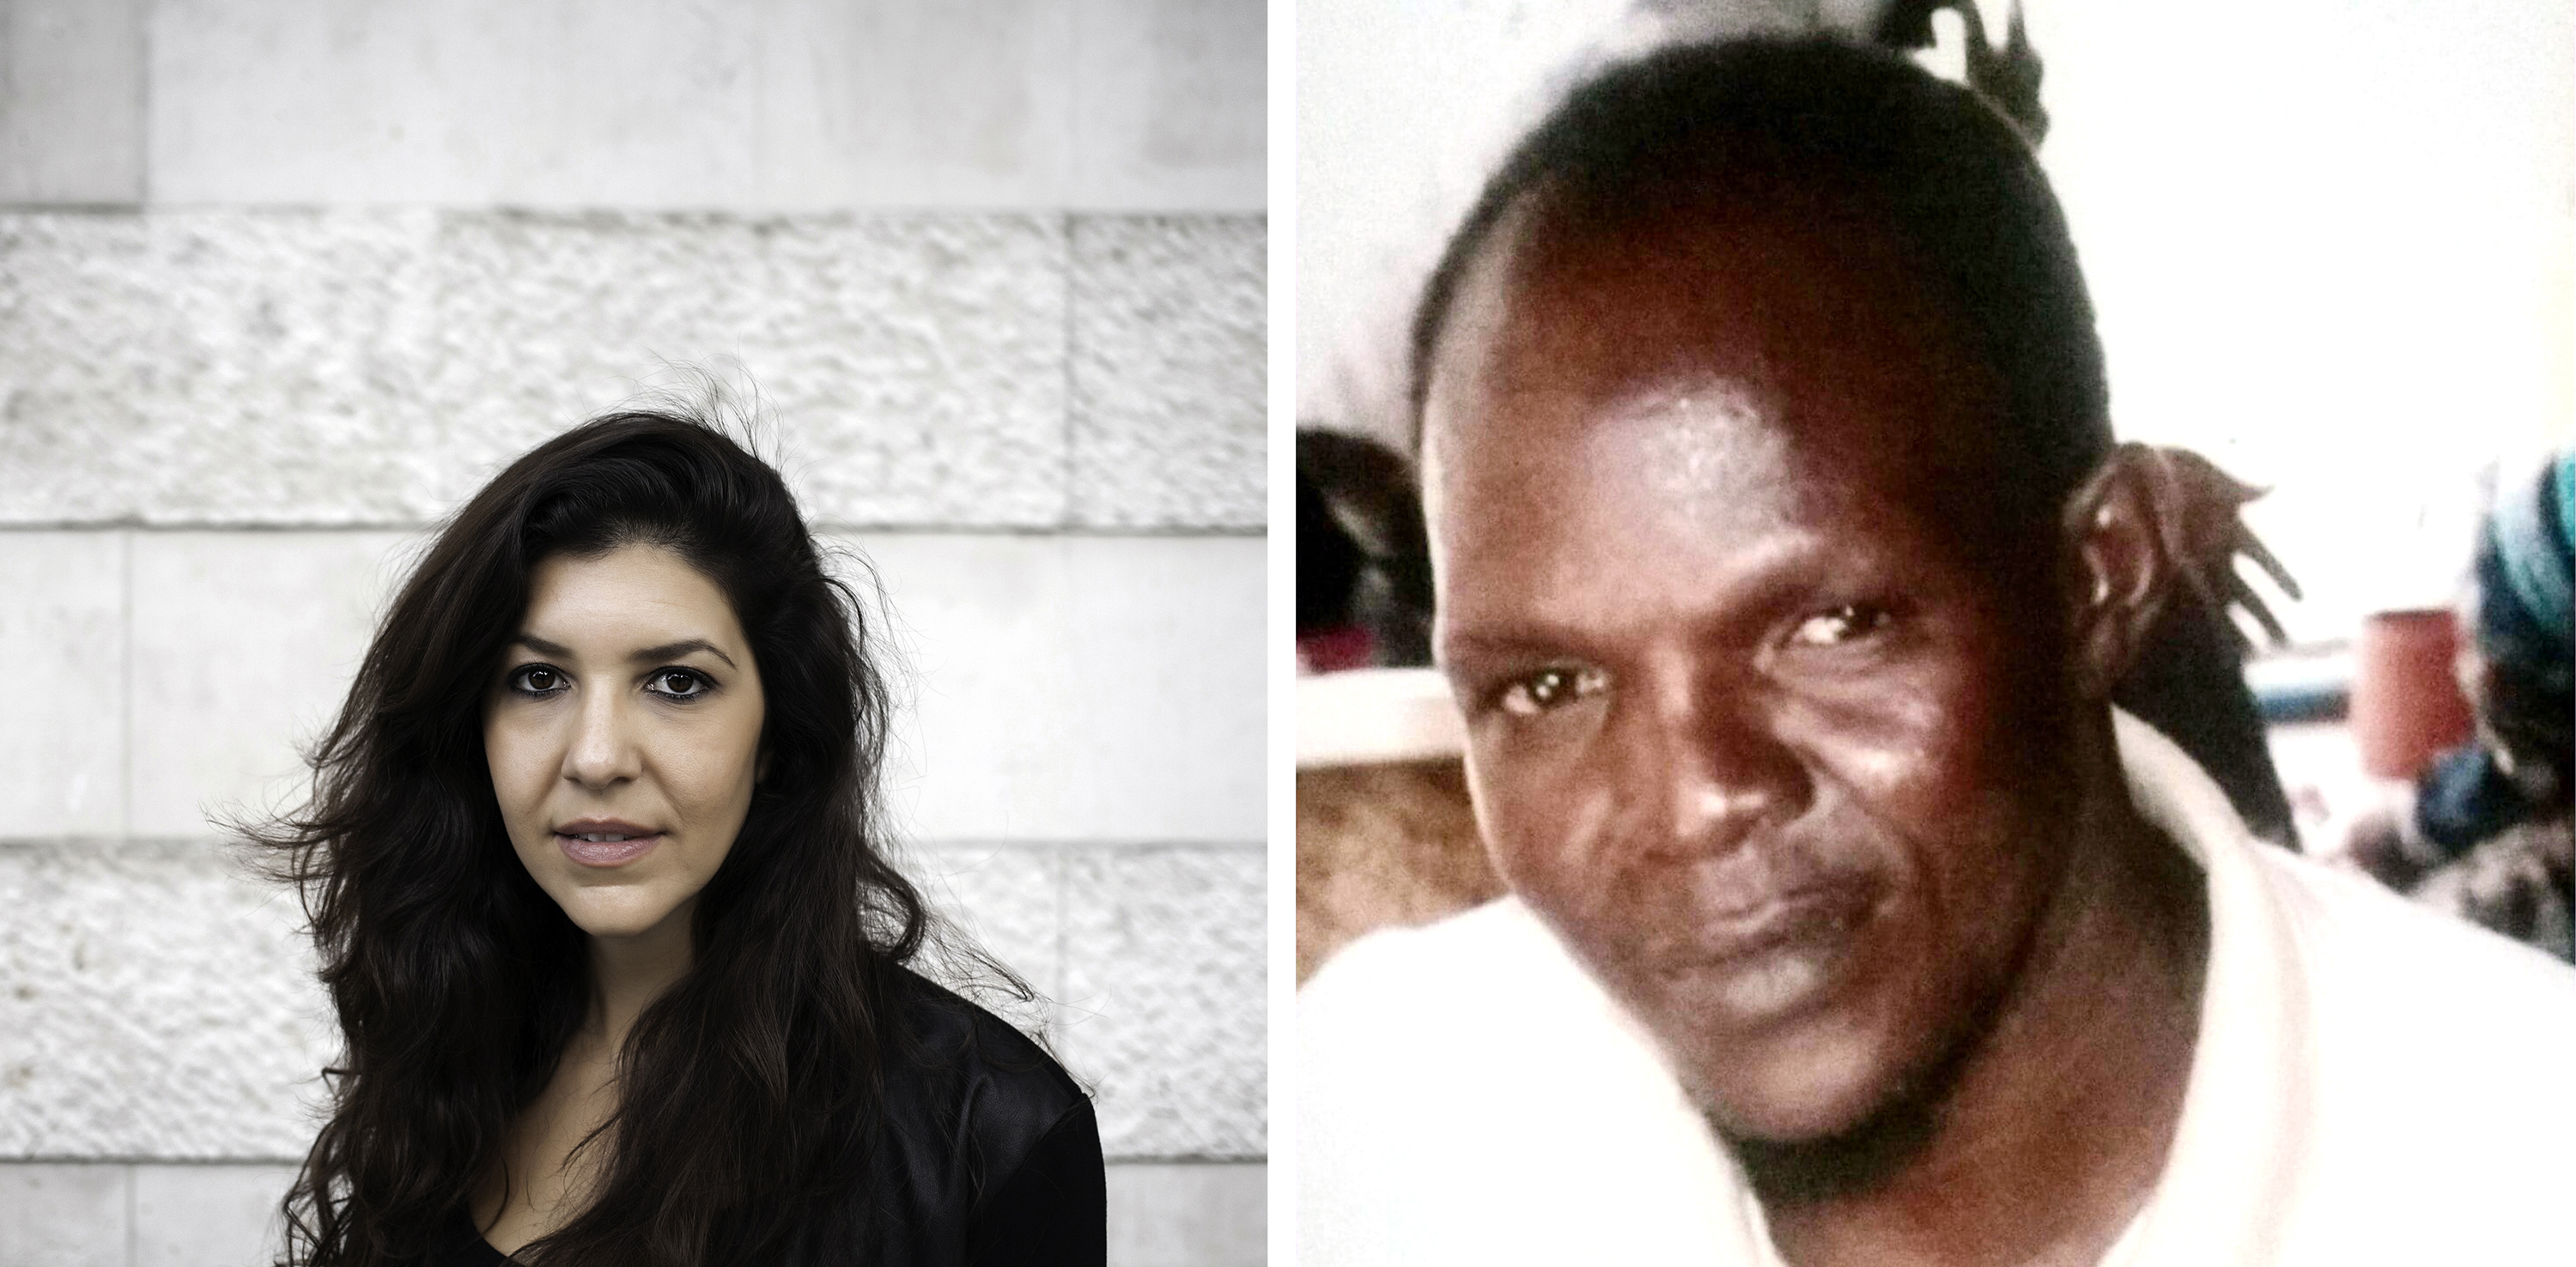 Photographer Leila Alaoui, who was killed in the Al Qaeda attack in Ougadougou, Burkina Faso, on Friday 15 January 2016. Mahamadi Ouédraogo her driver was also killed in the attack.